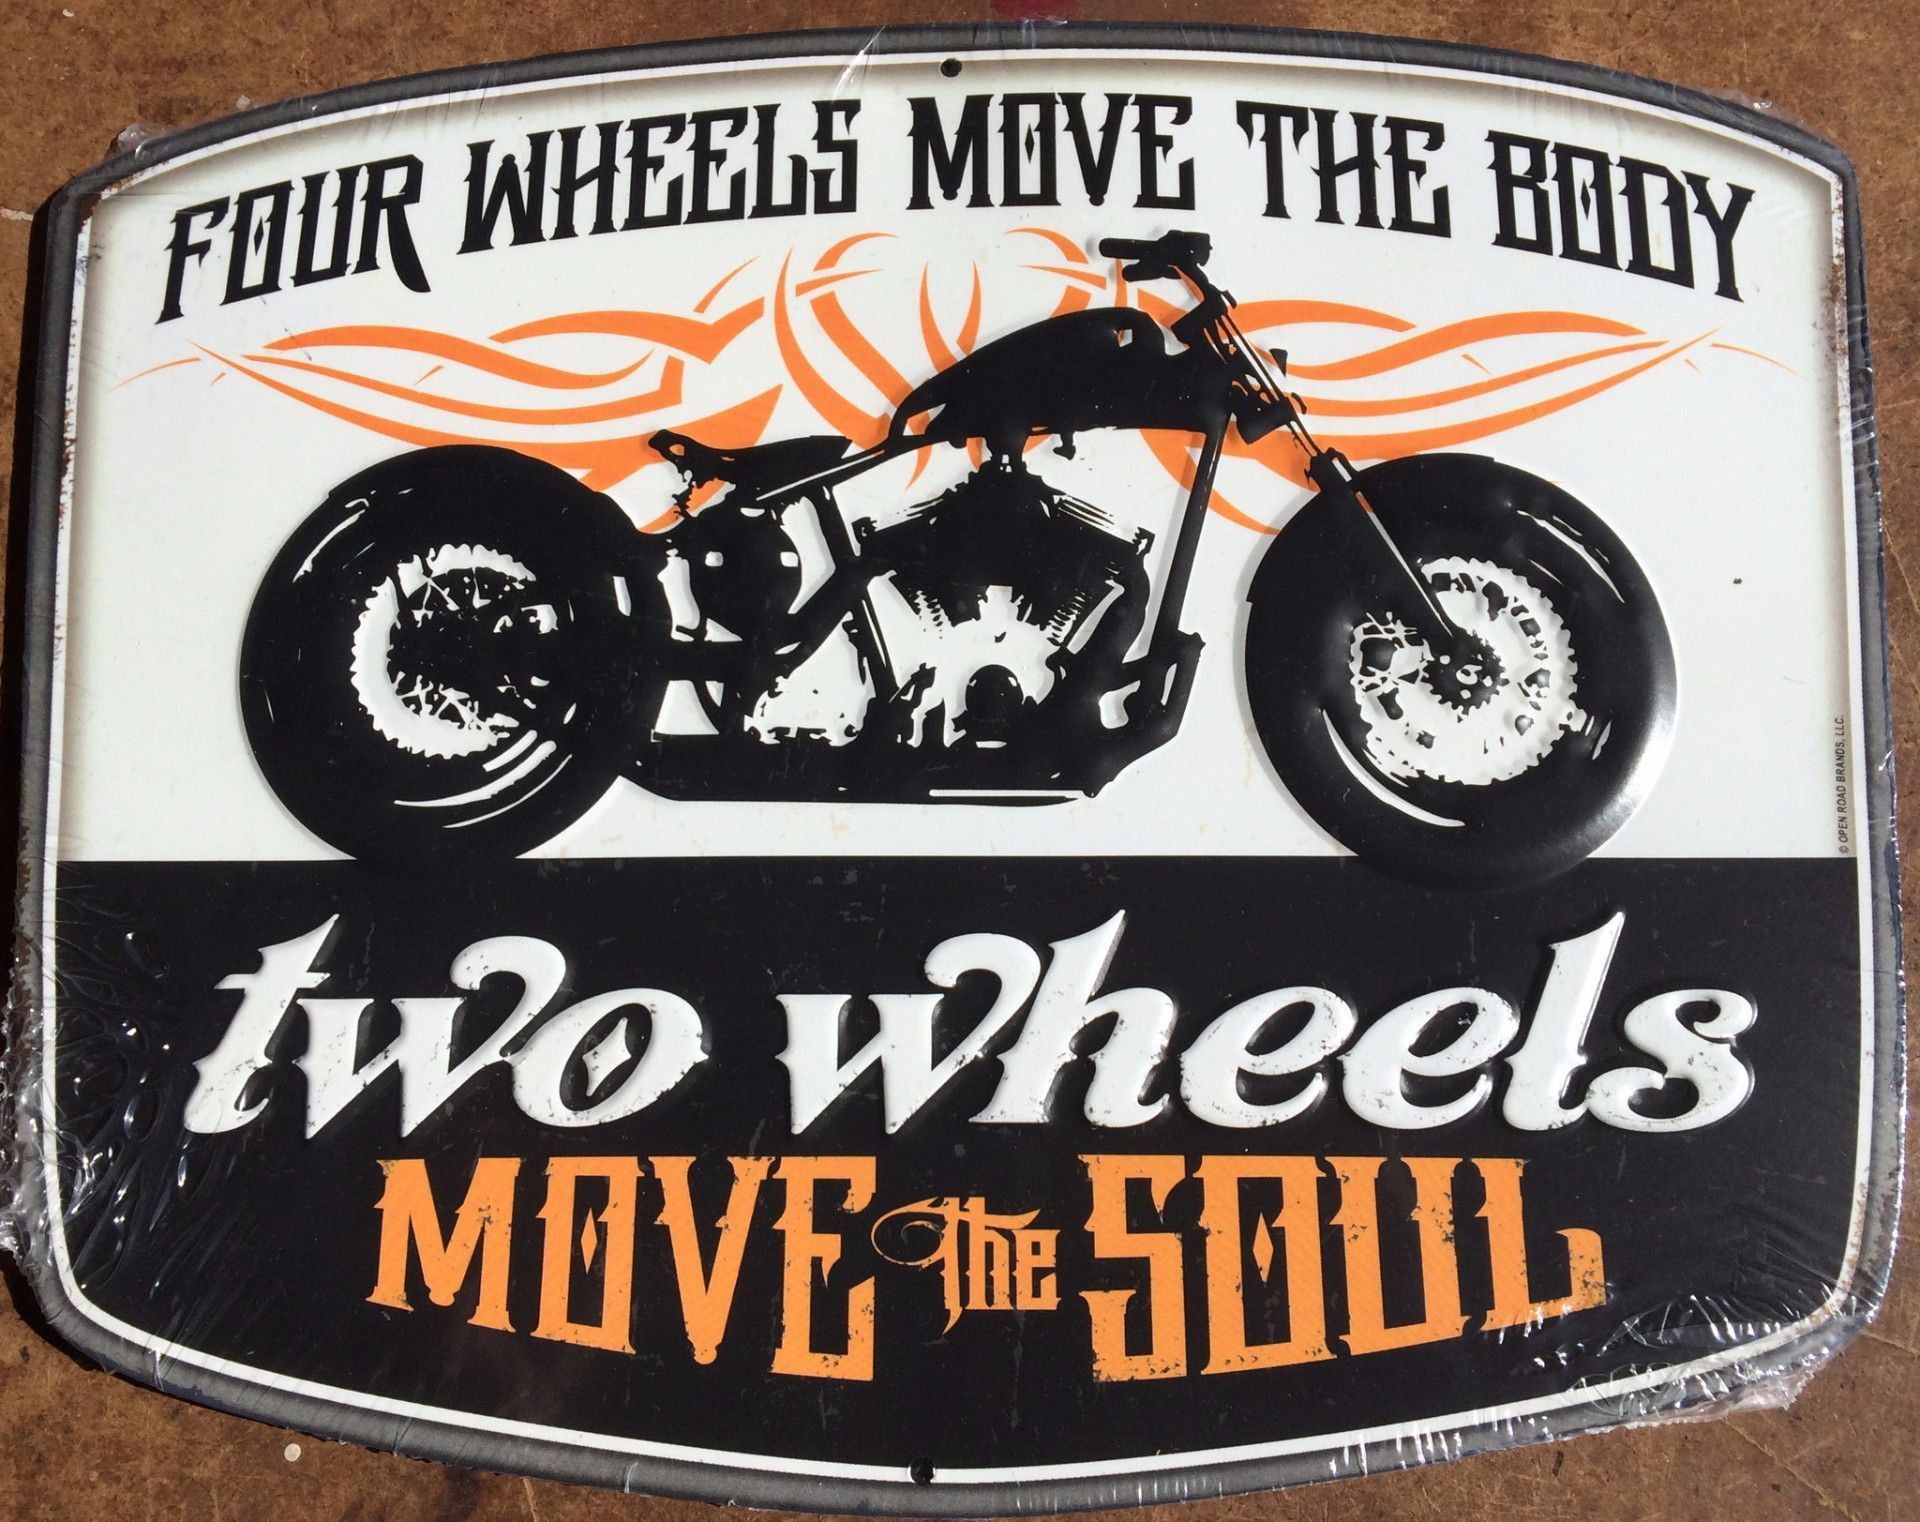 Full Text On Sign: Four Wheels Move The Body Two Wheels Move The Soul